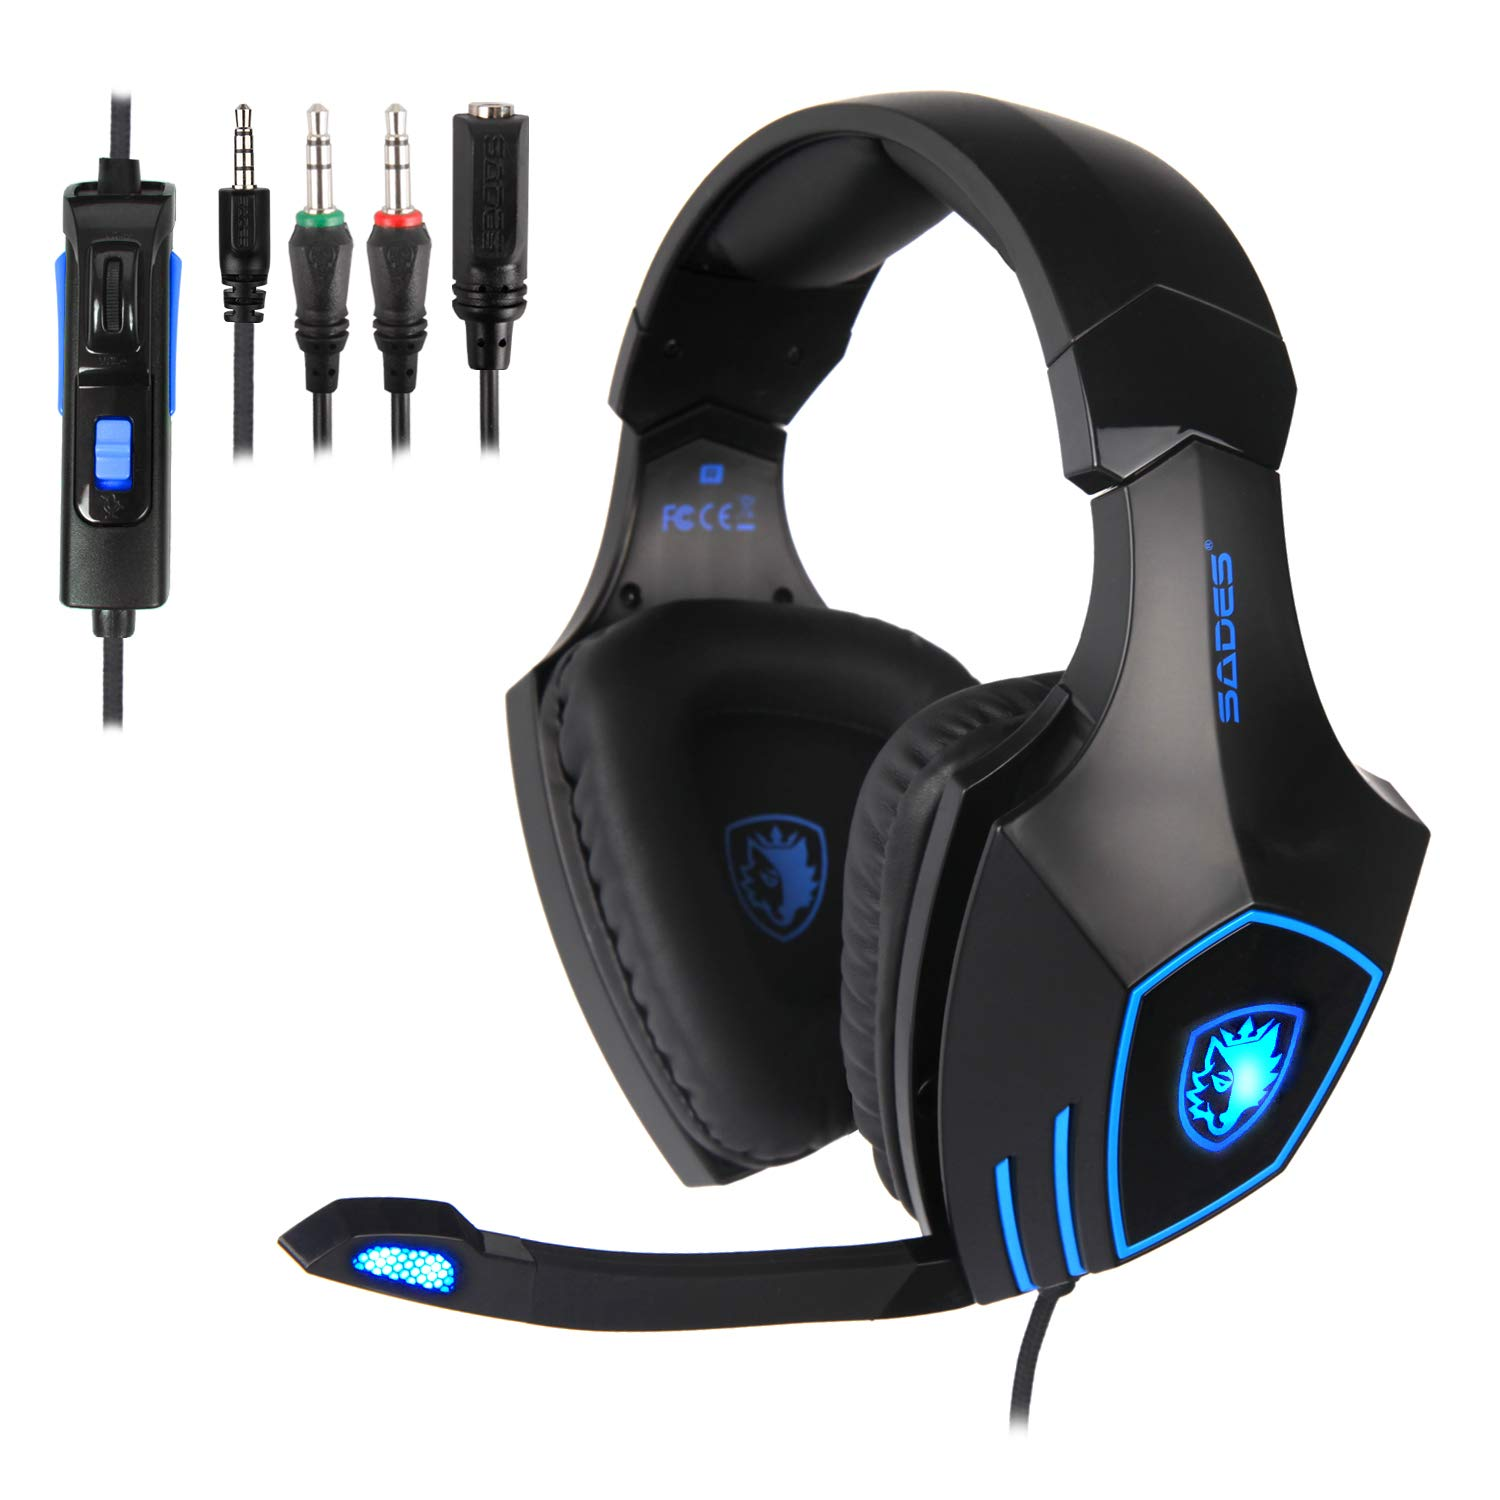 SADES Gaming Headset for New Xbox One, PS4, PC, Noise Reduction Game Earphone